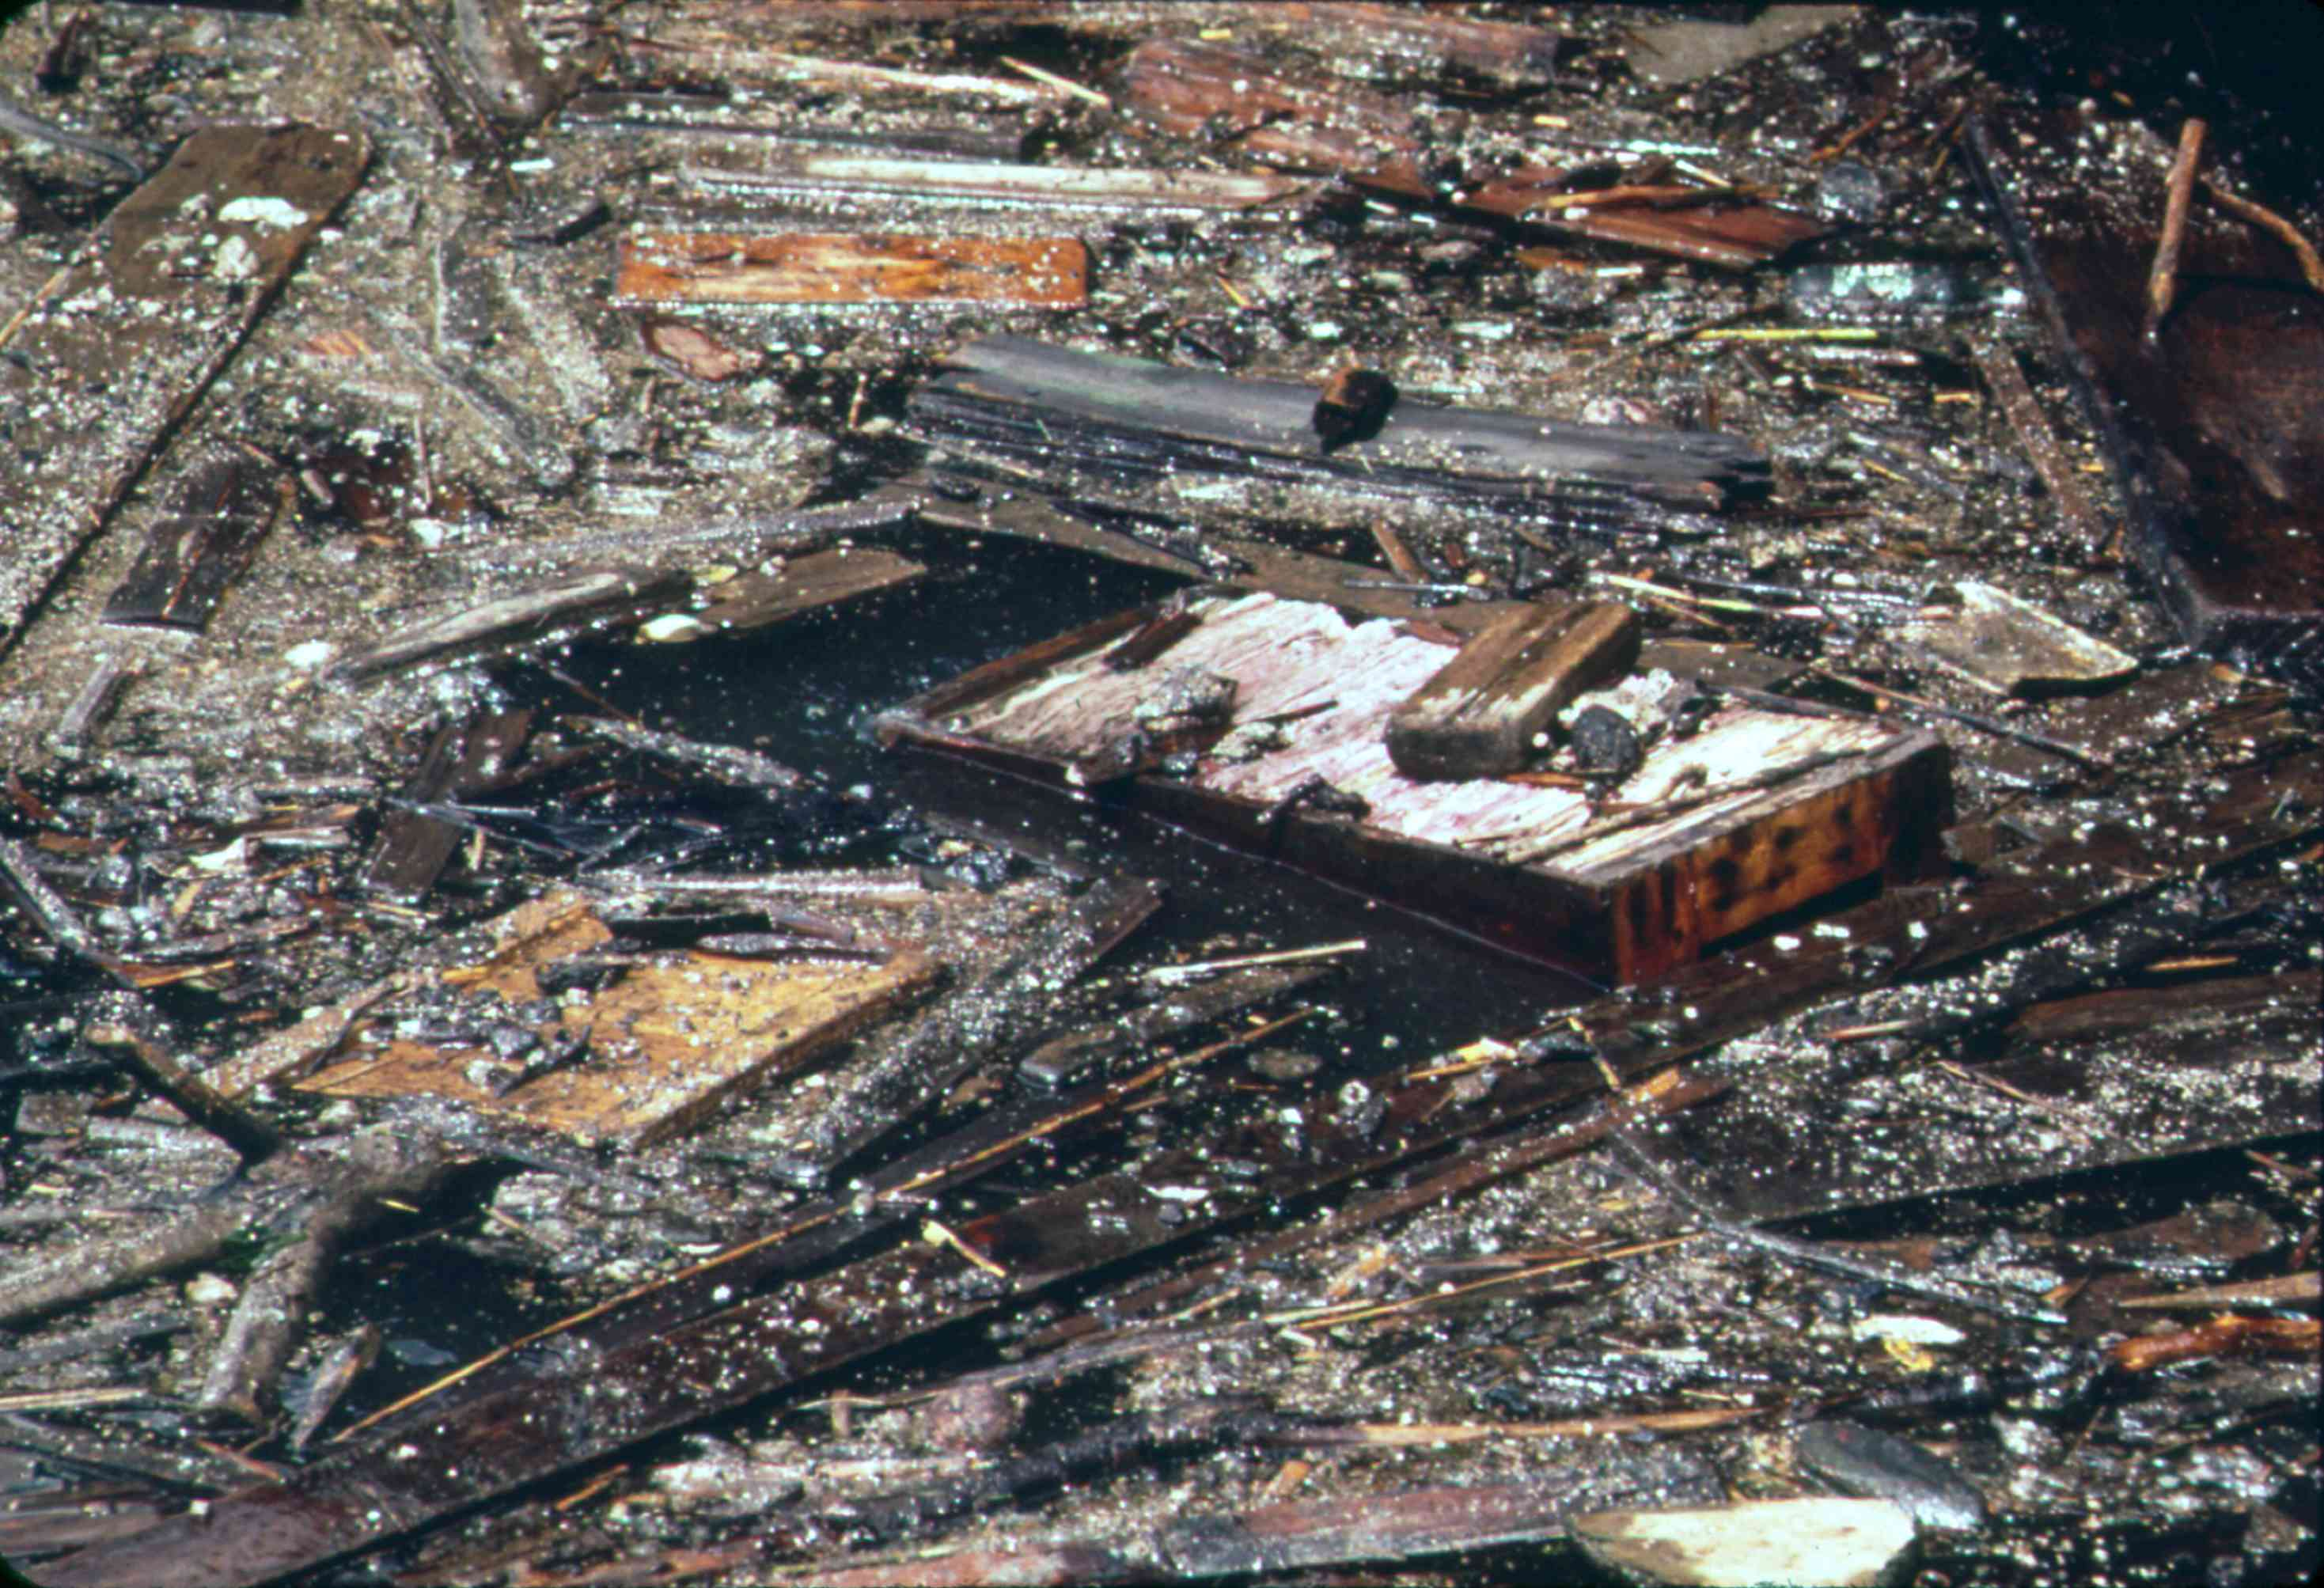 pollution in the Hudson River, New York